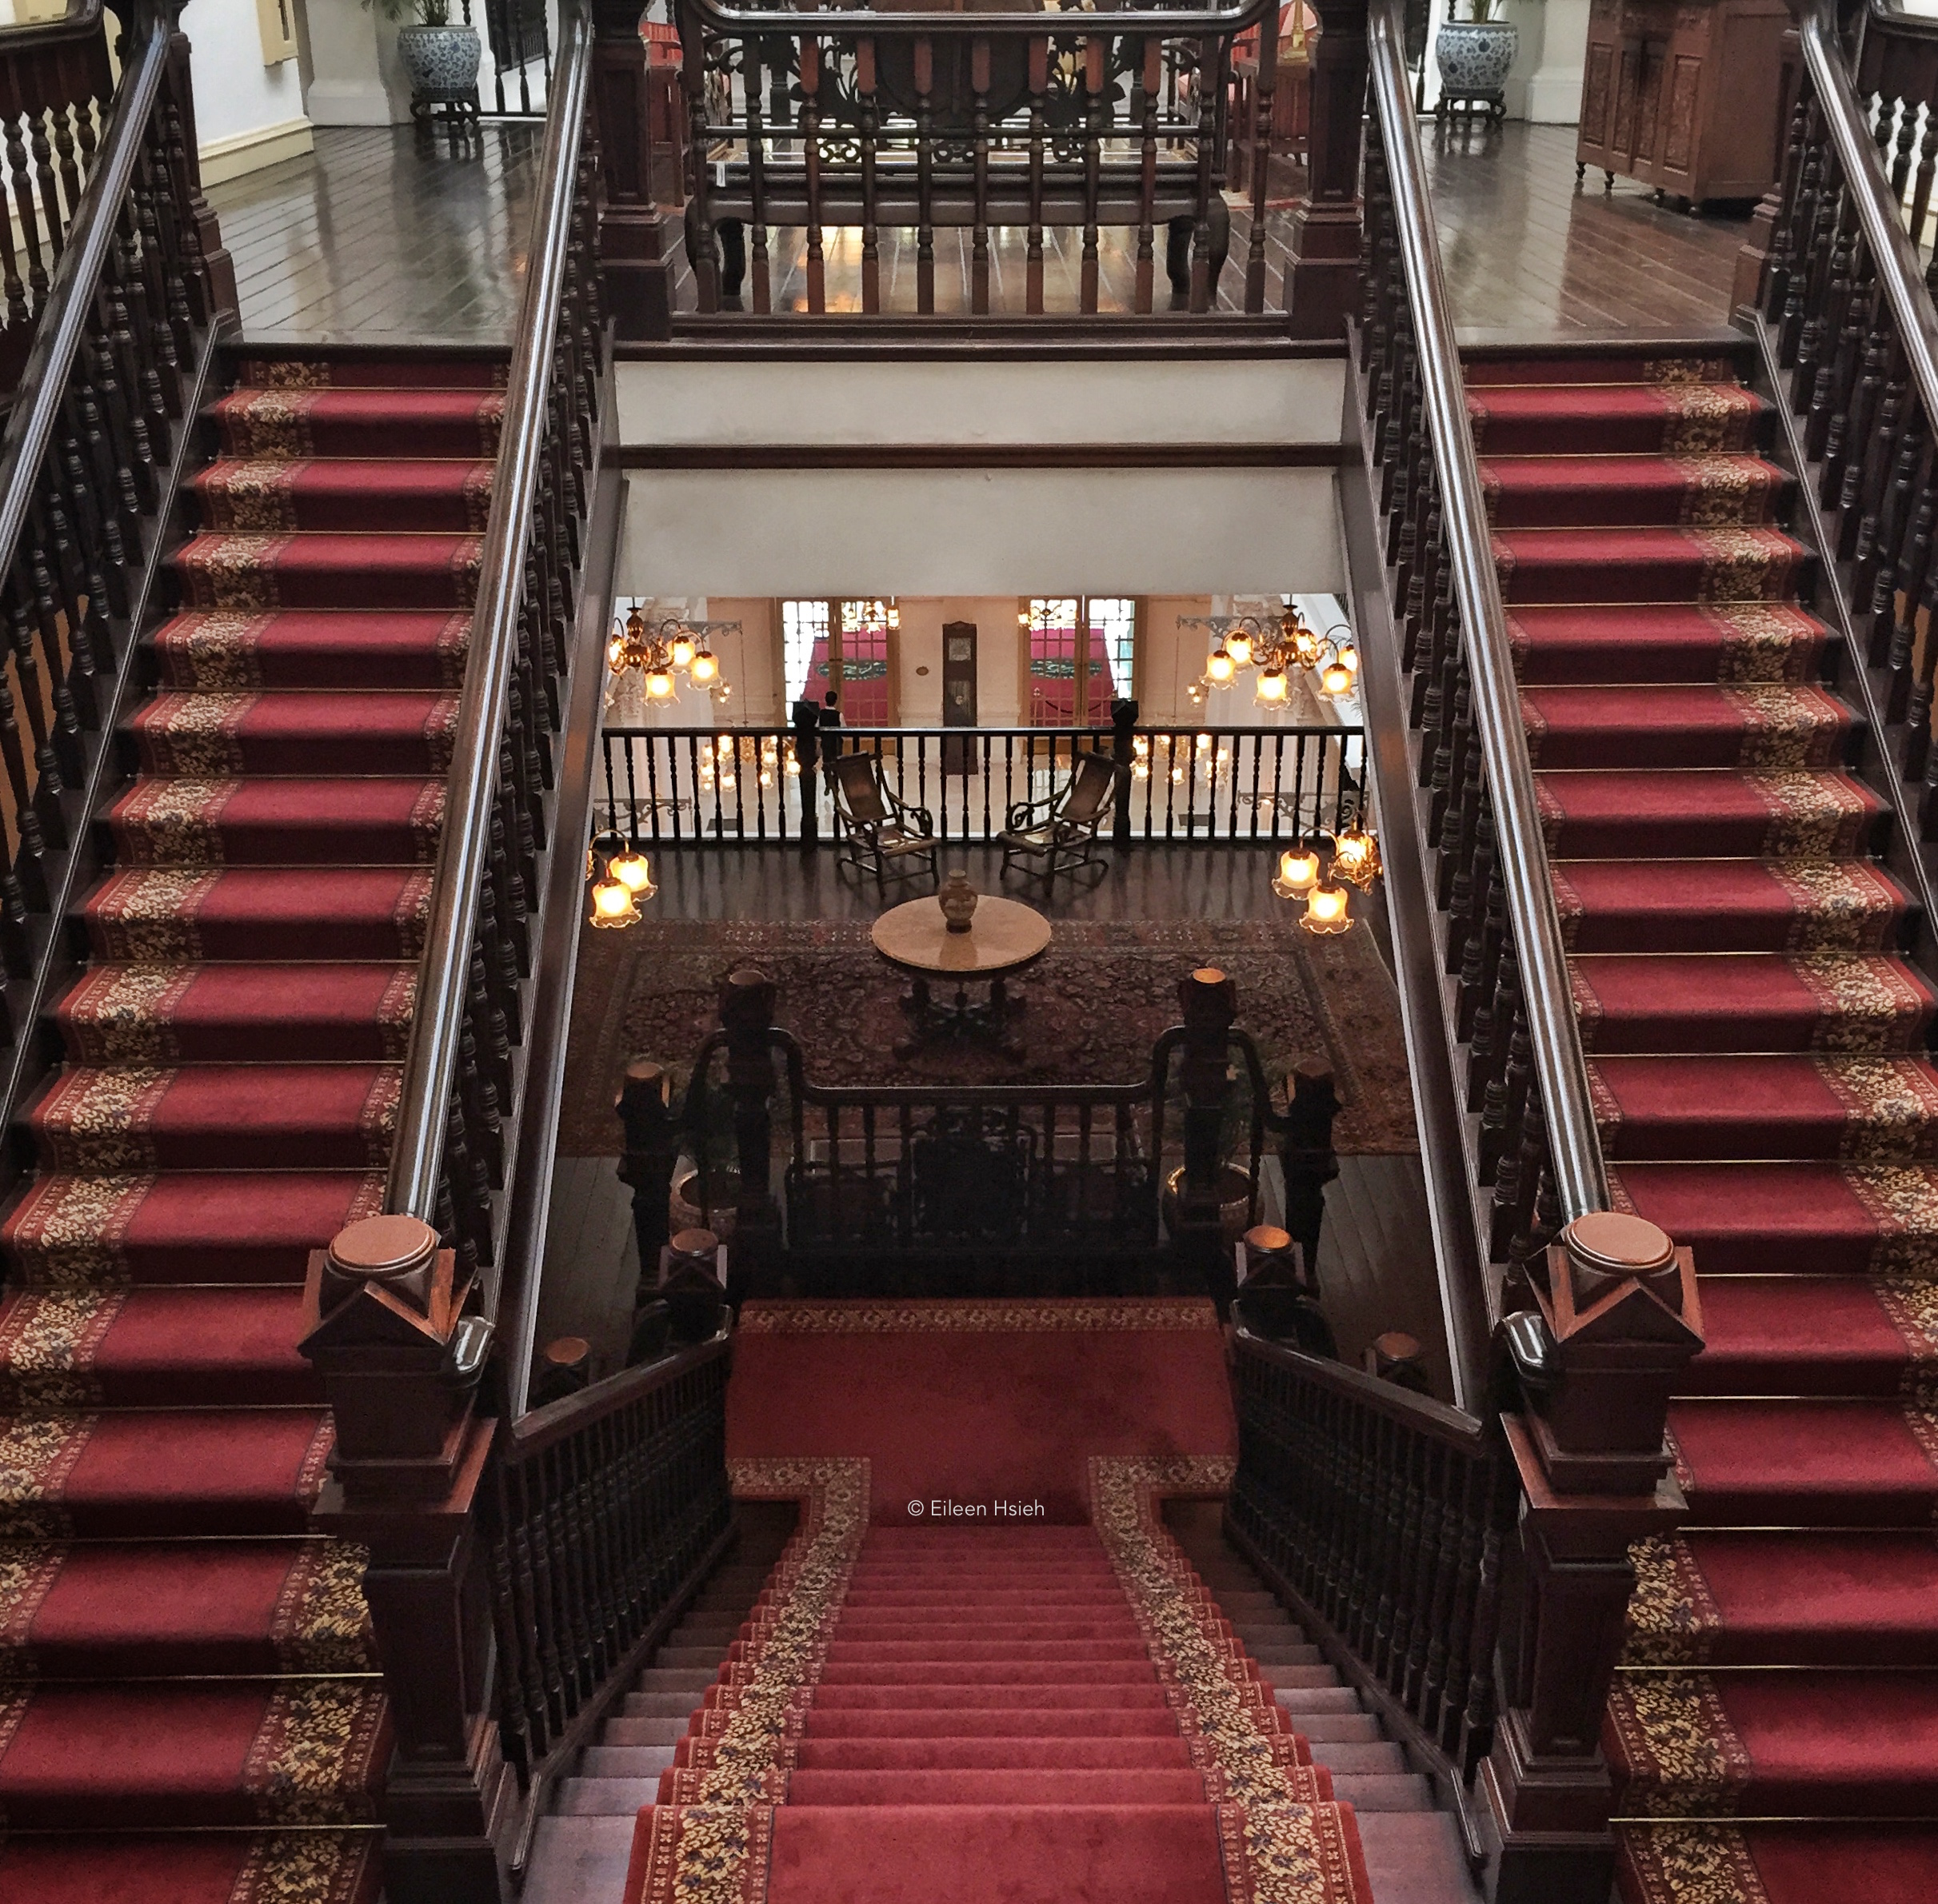 Grand stairs covered with plush oriental rugs. © Eileen Hsieh